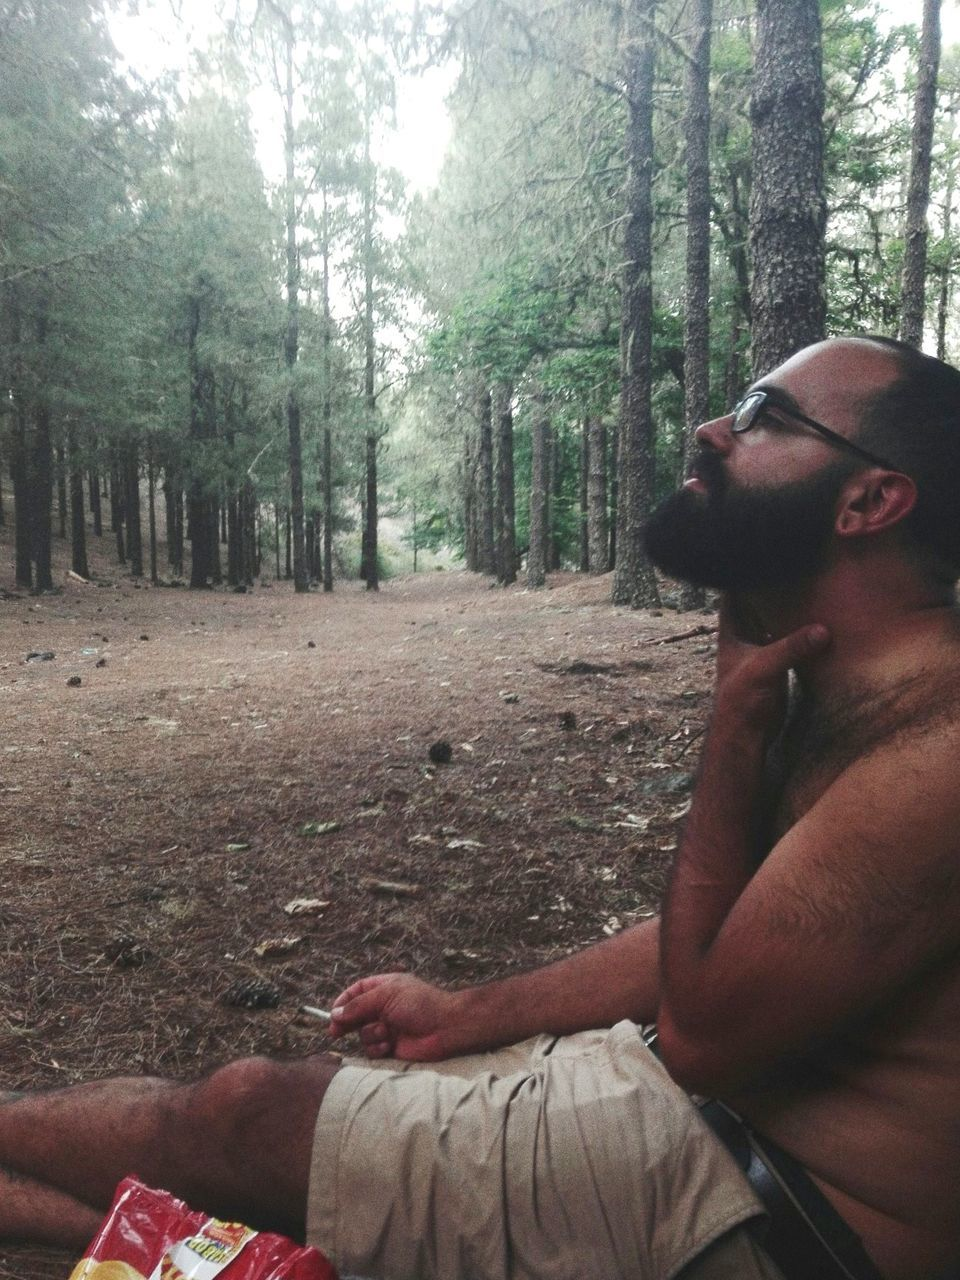 Side View Of Shirtless Man Sitting Against Trees In Forest